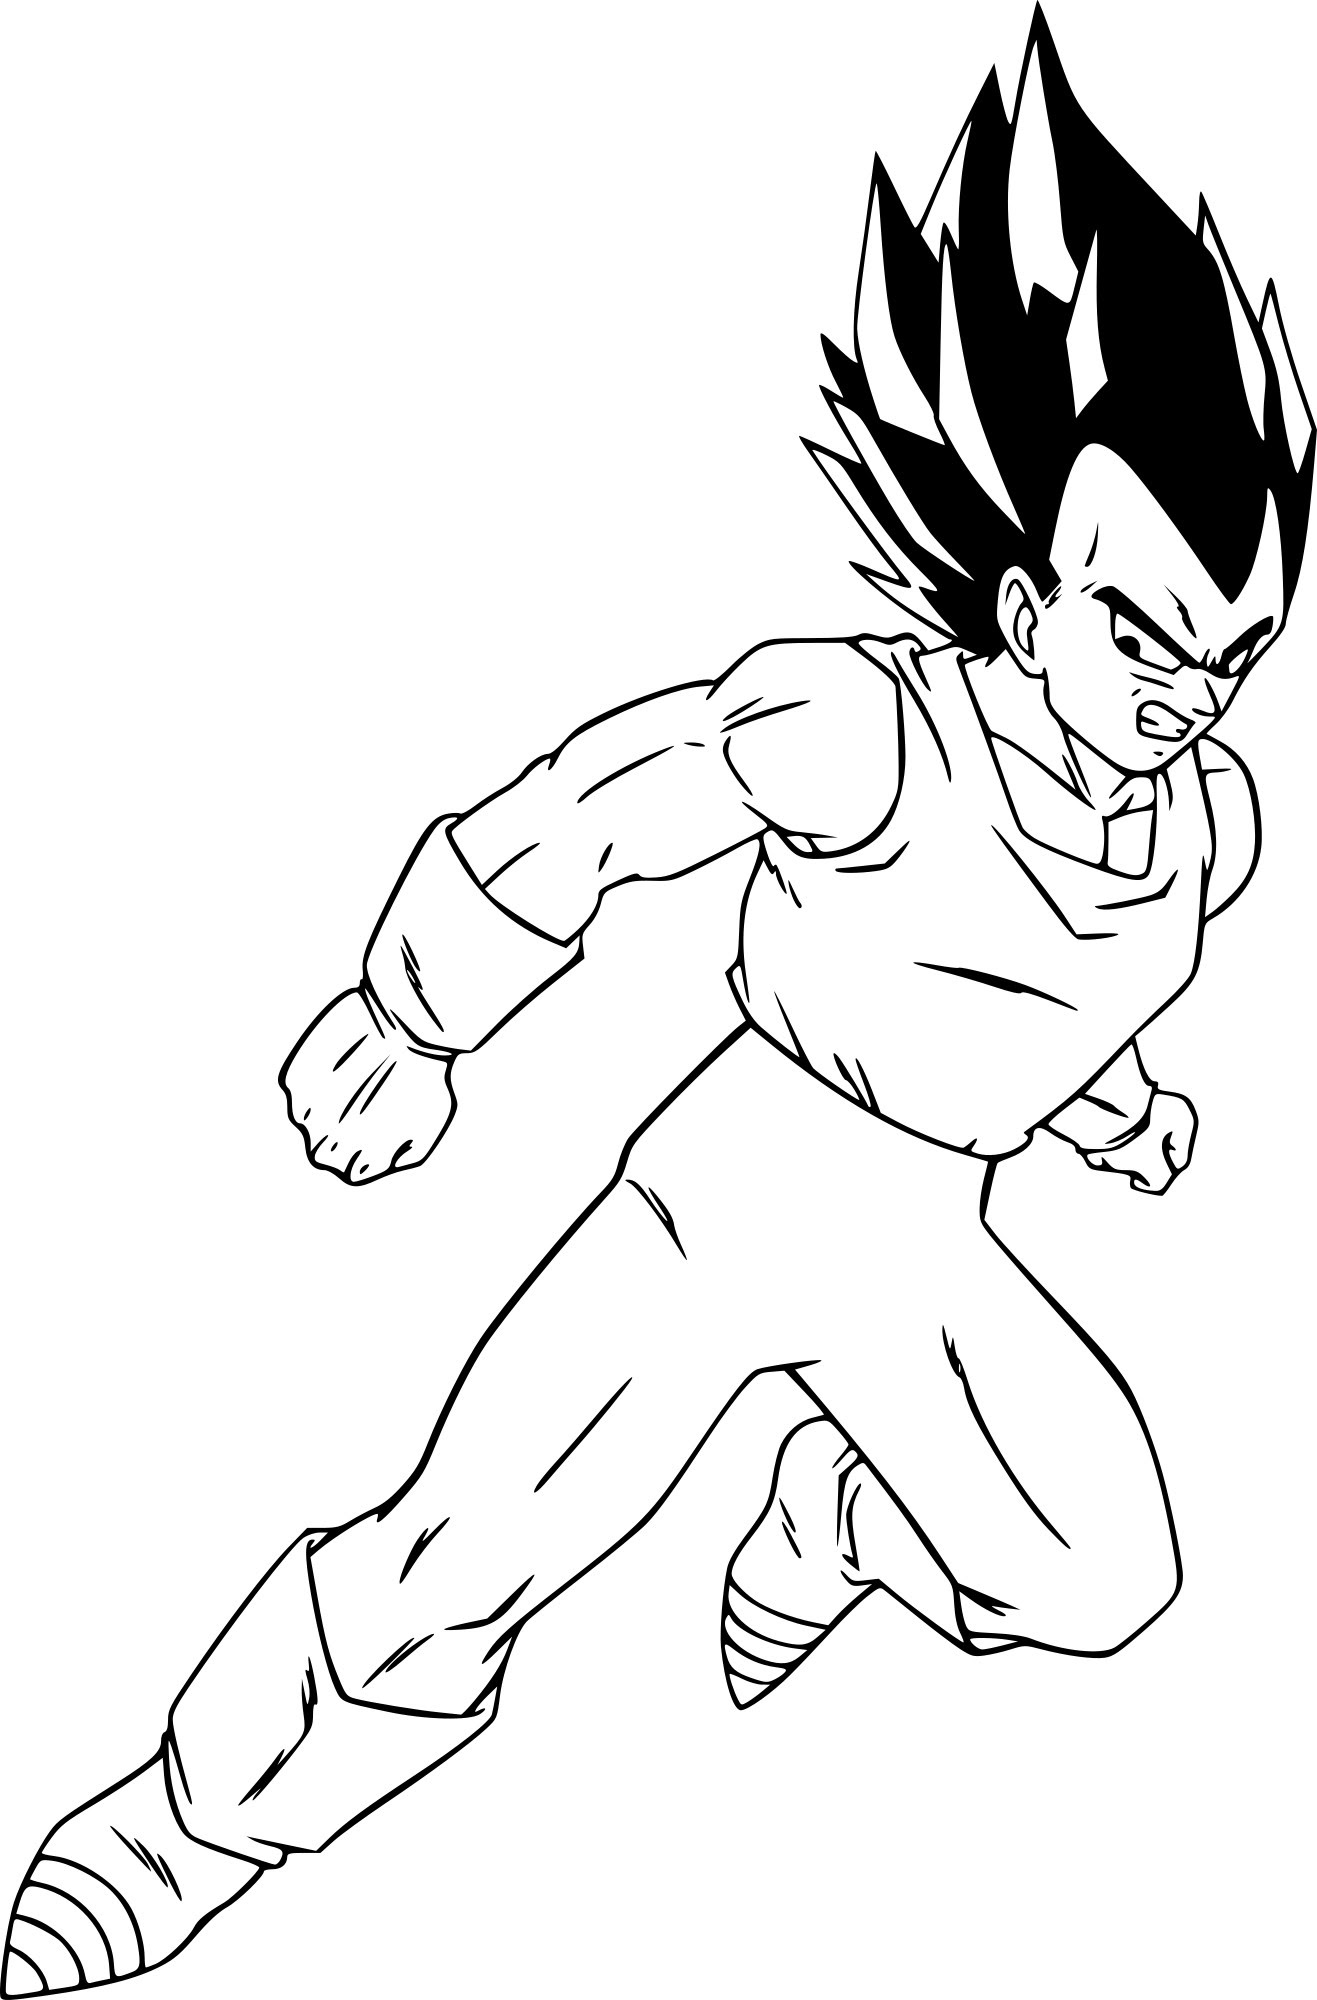 Coloriage Dragon Ball Z Vegeta à Imprimer Sur Coloriages Info